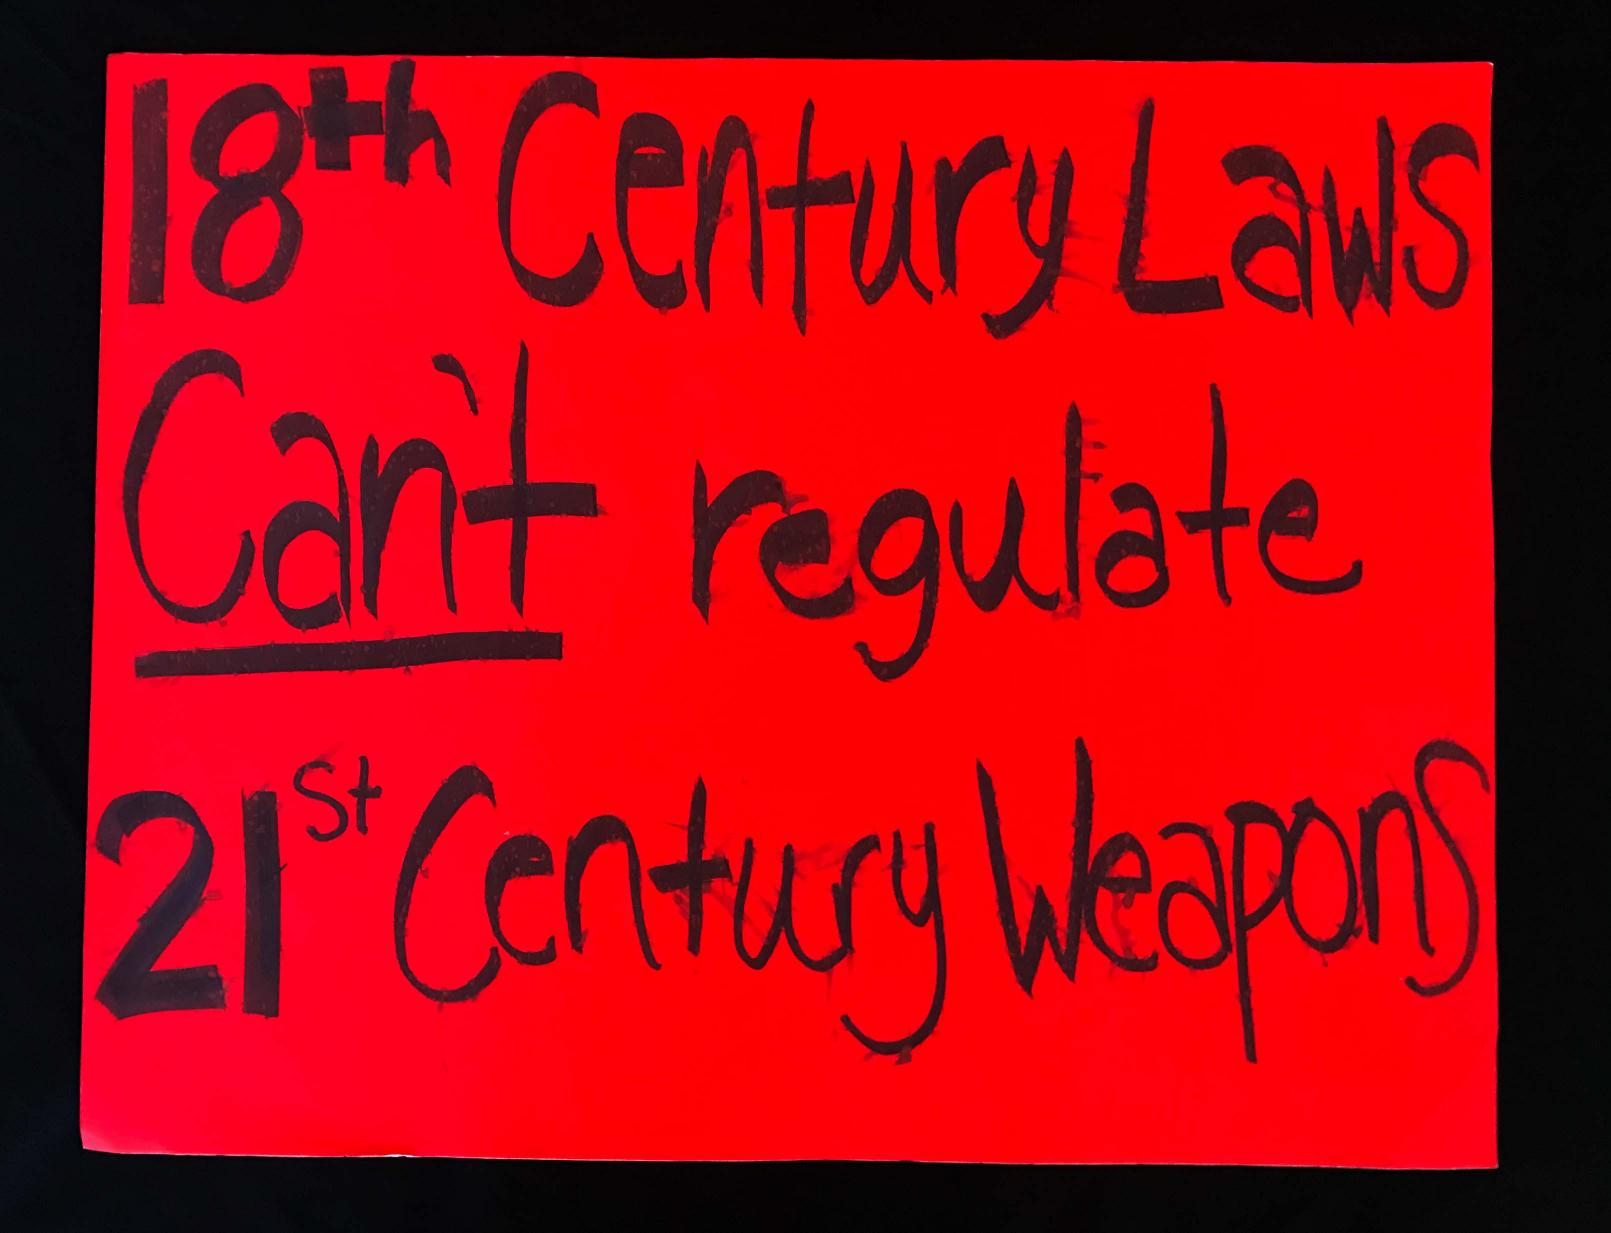 "Charlotte March for Our Lives, 2018. Sign reads: ""18th-century laws can't regulate 21st-century weapons."""